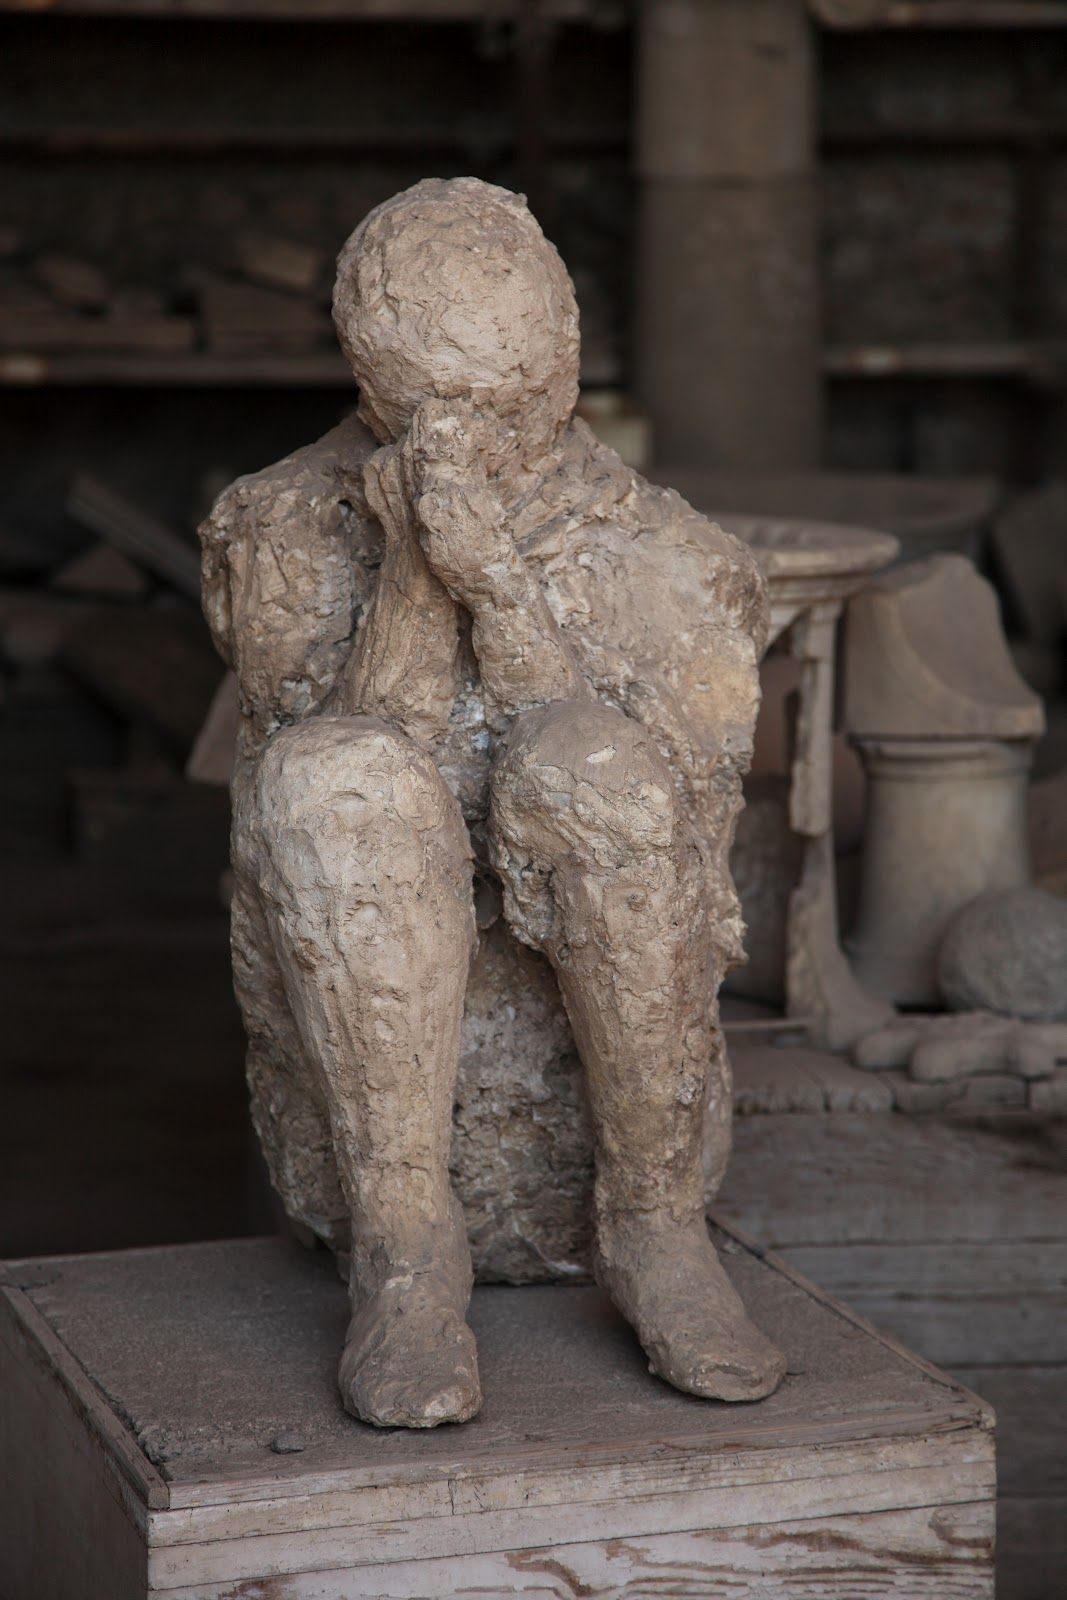 pompeii bodies - Google Search | Science fair projects ...